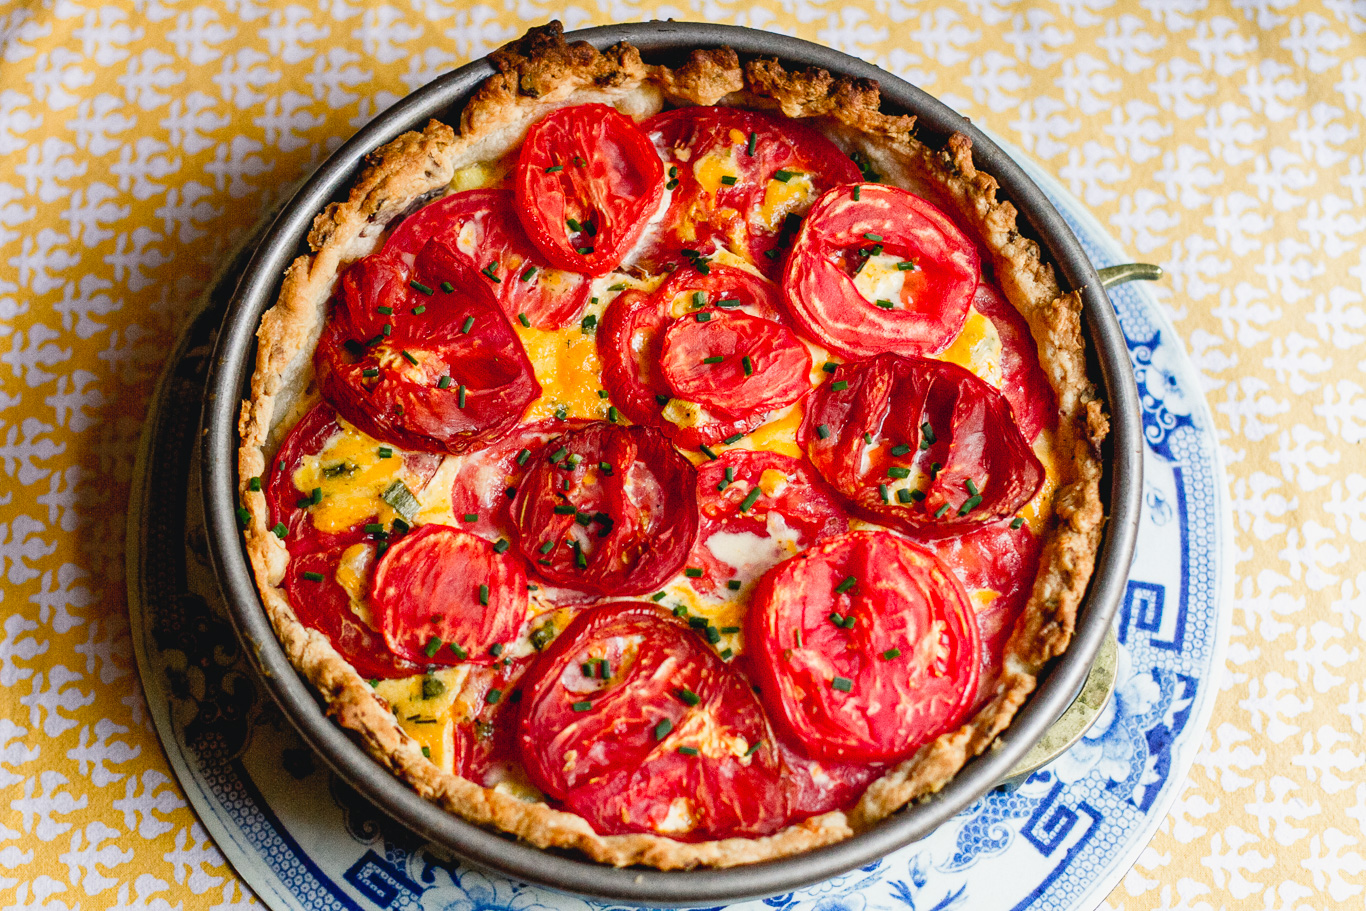 Tomato, Bacon, and Cheddar Pie